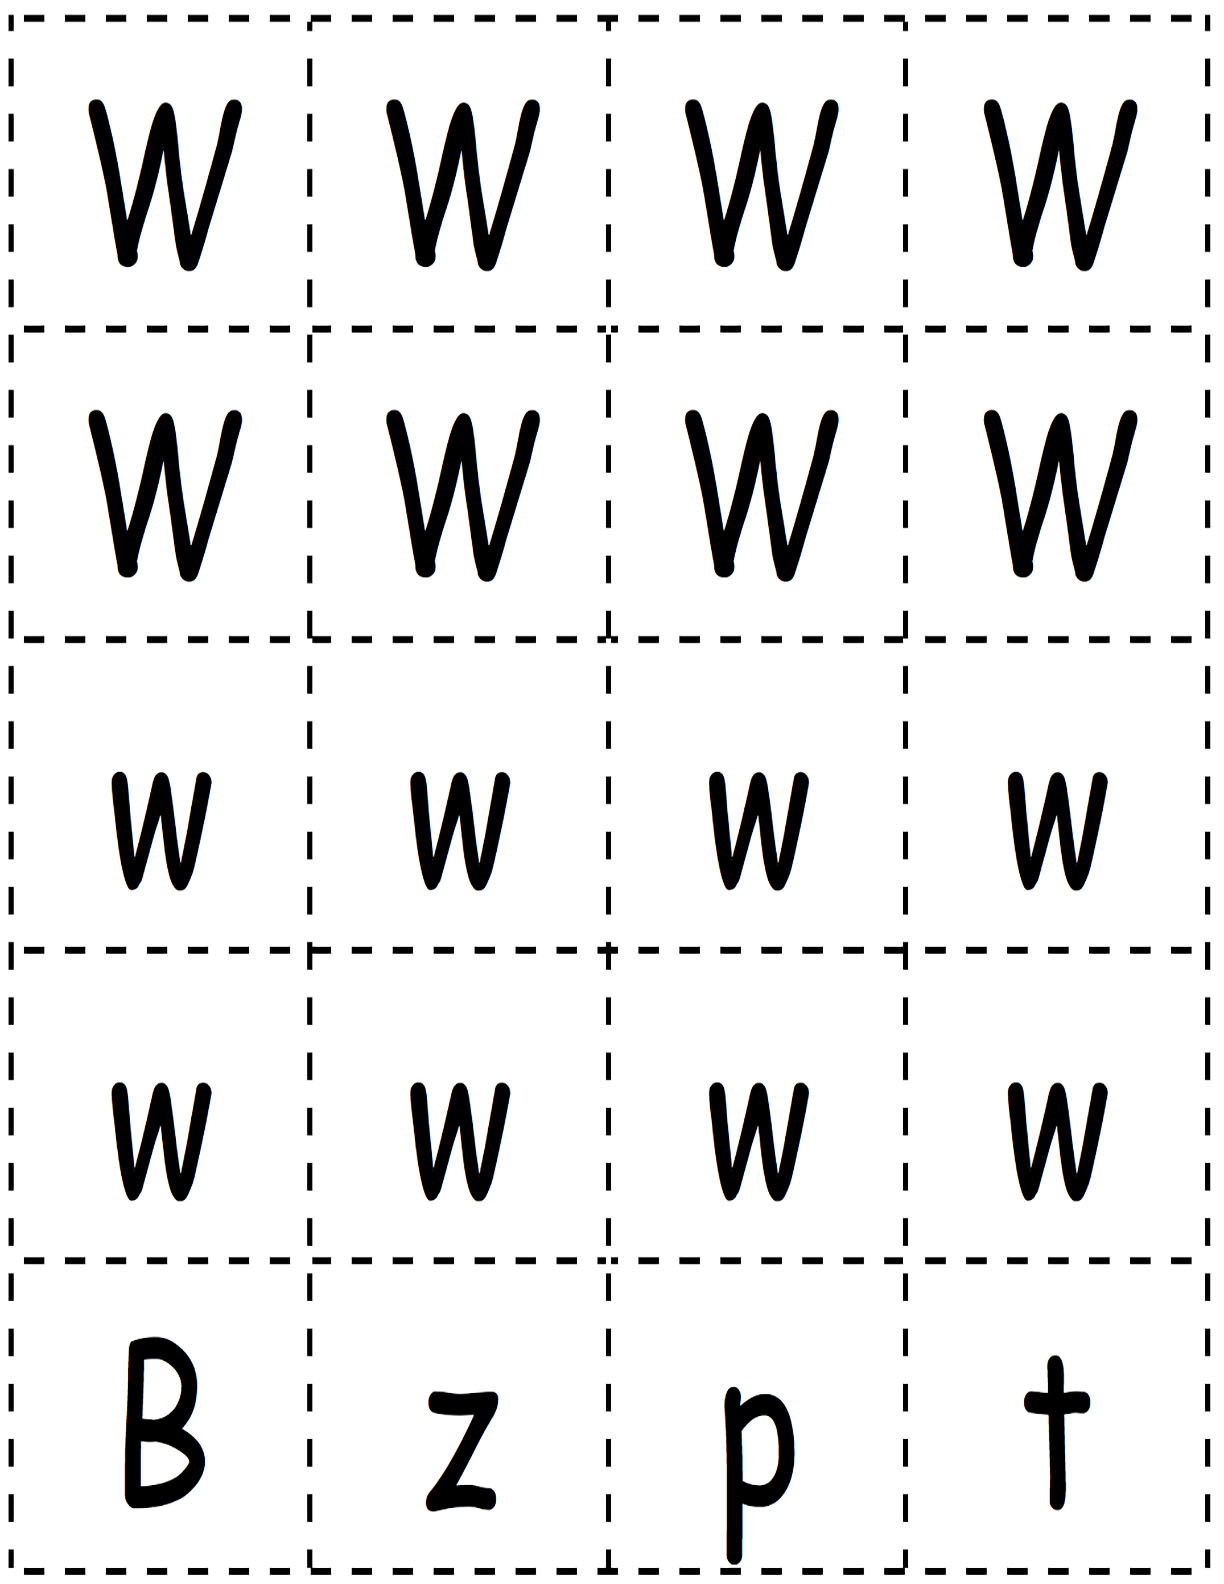 W Letter Cards